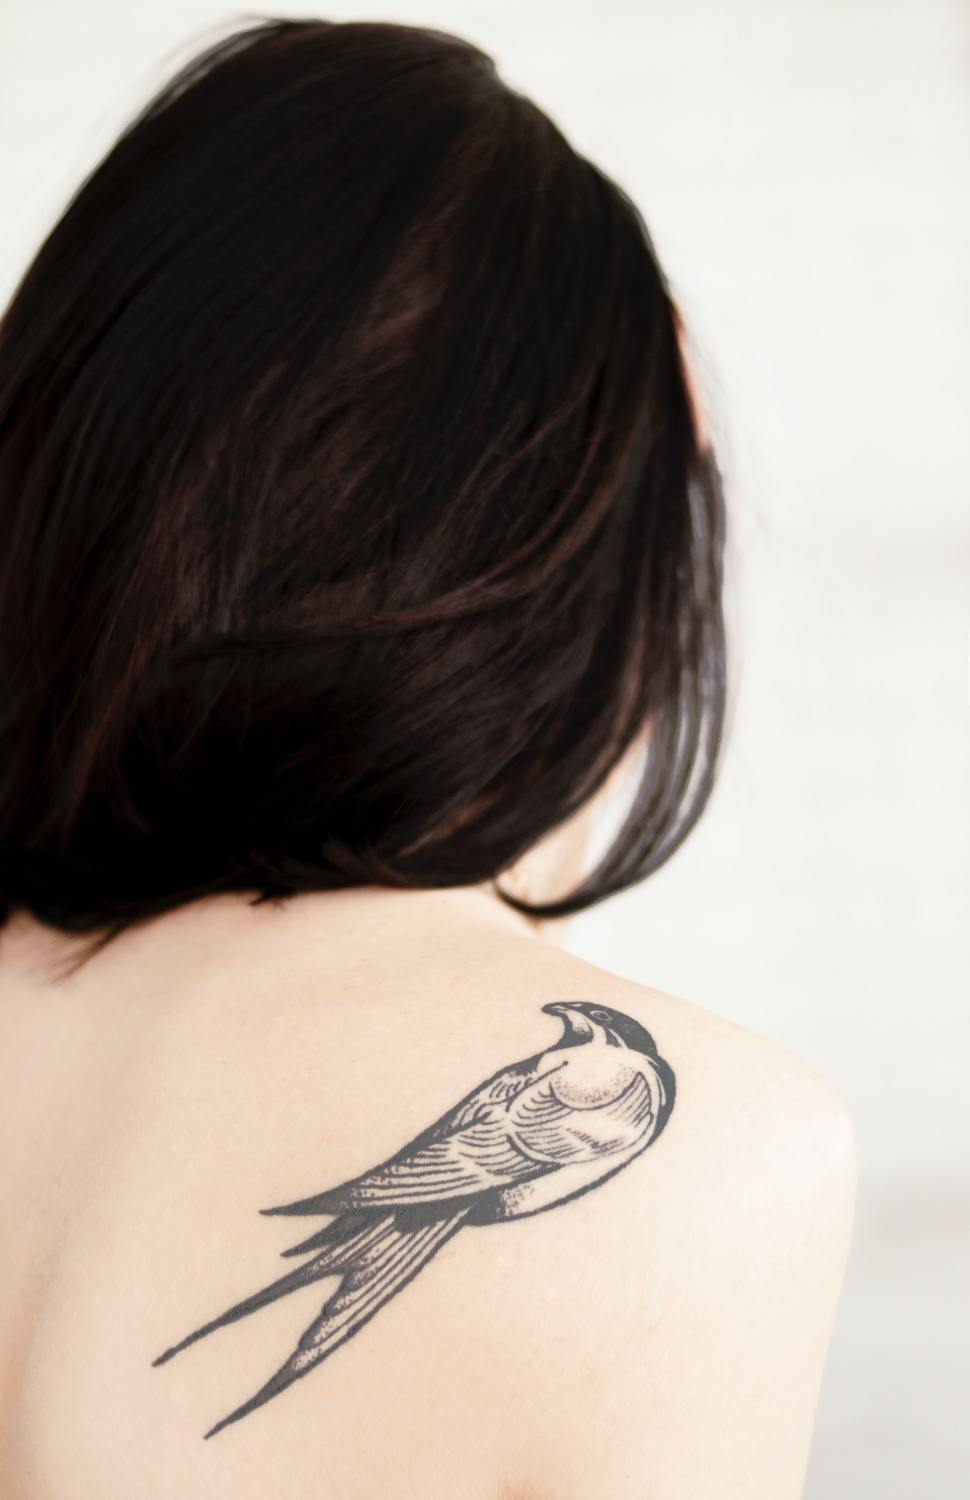 5 Reasons Why You Should Get Your Dream Tattoo: Seize The Day!